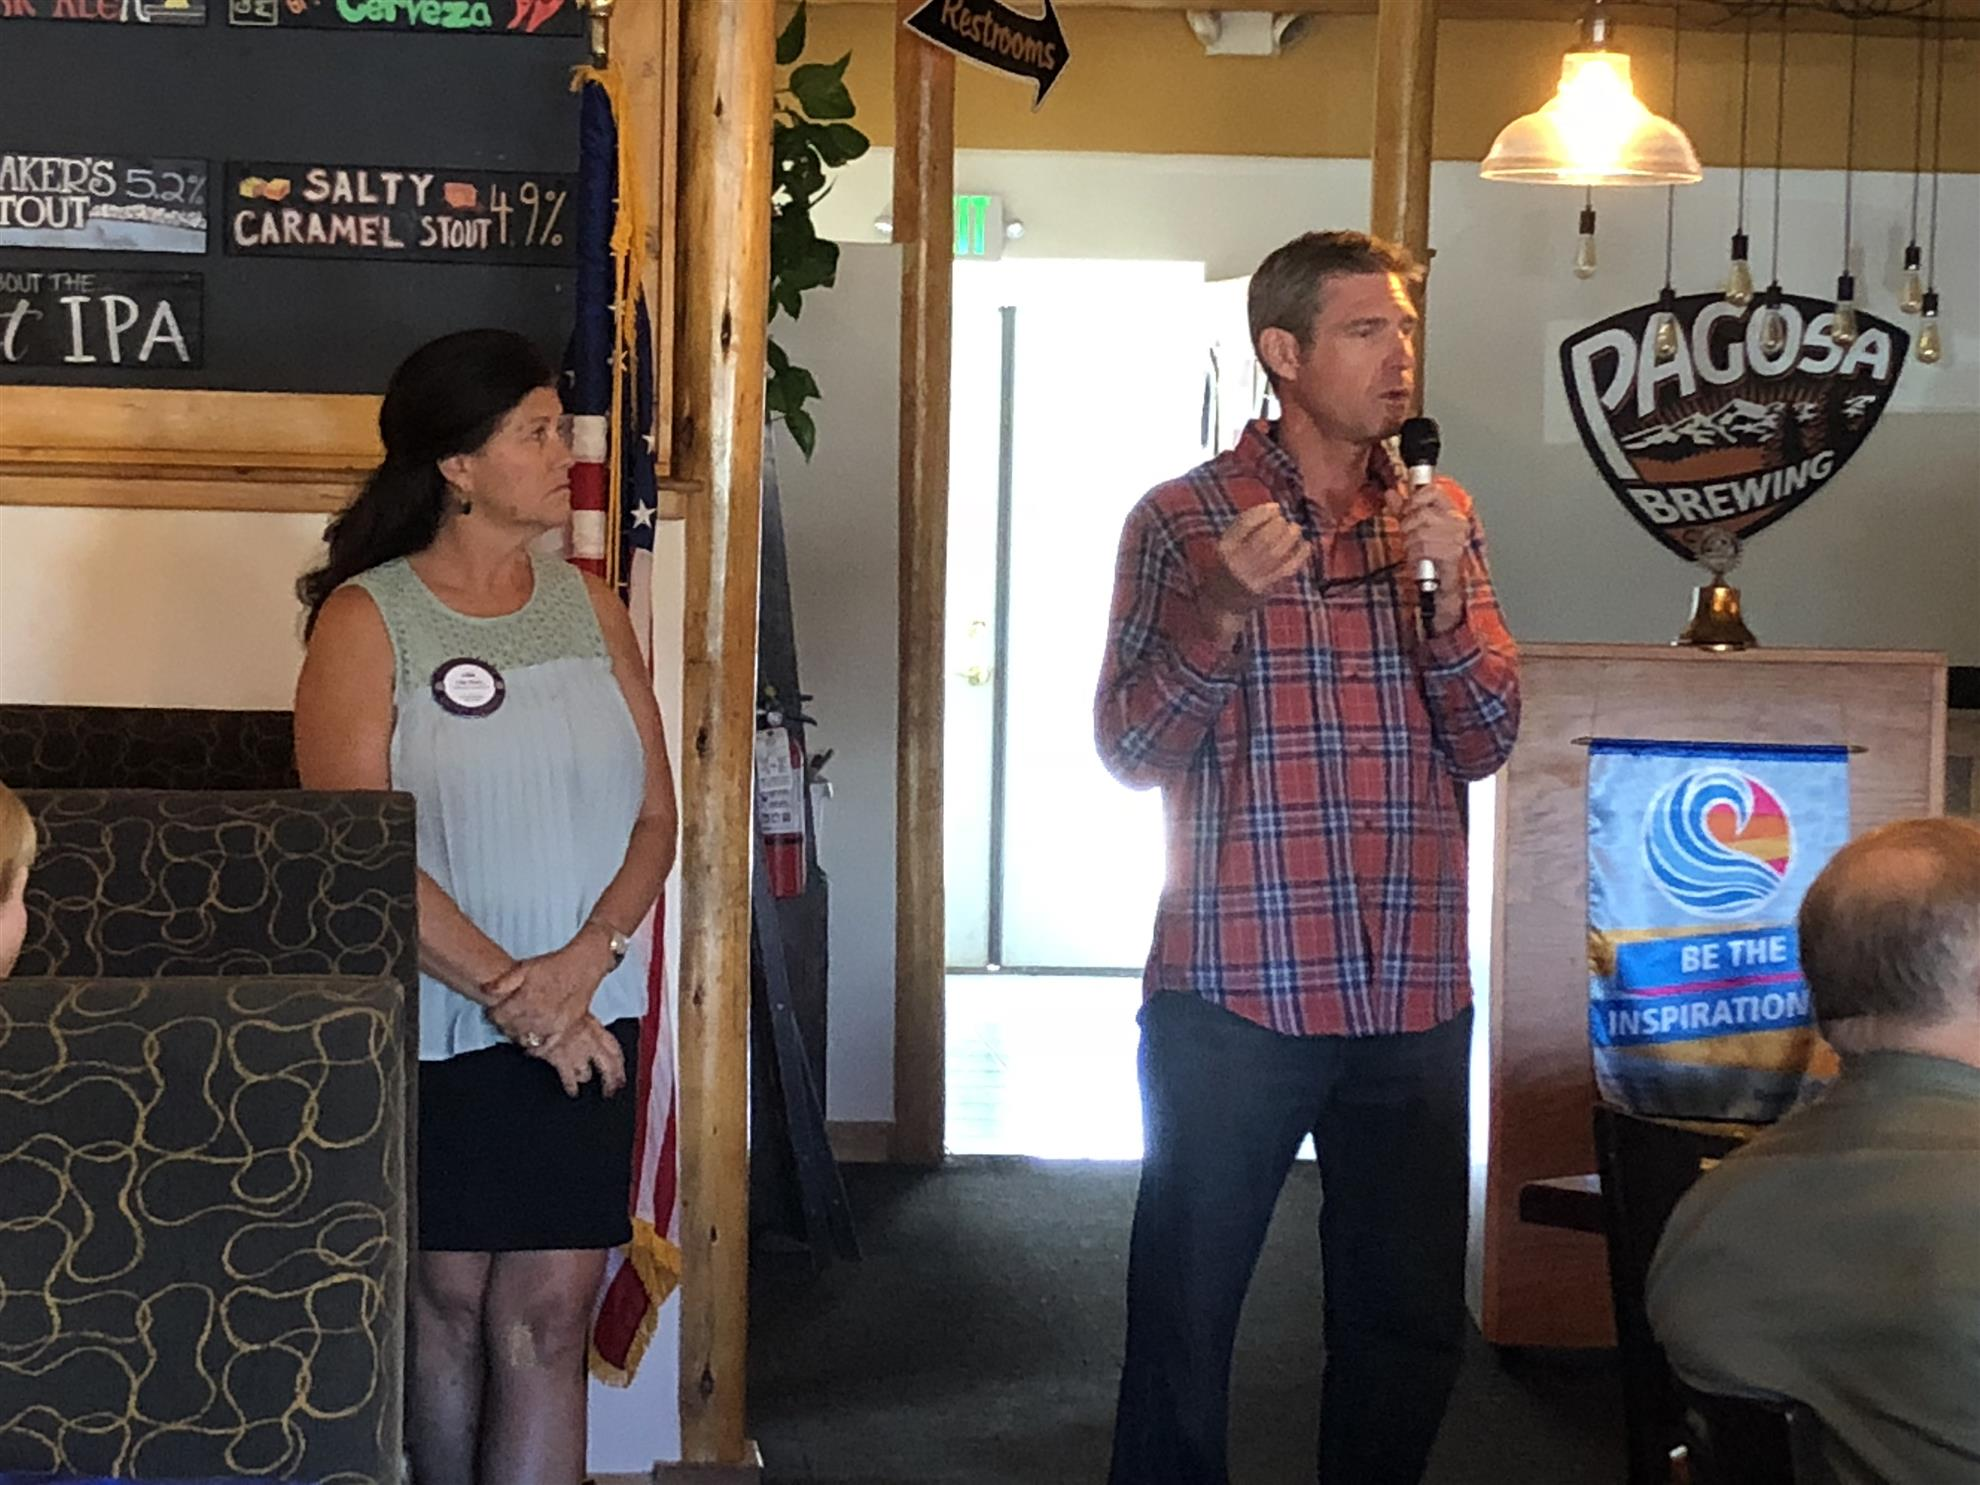 Stories Rotary Club Of Pagosa Springs Refill Leivy Goatamp039s Milk Shower Cream With The Help Lisa Scott Was Present To Discuss November Ballot Question That Would Authorize A So Call Mill Levy Override Seeks